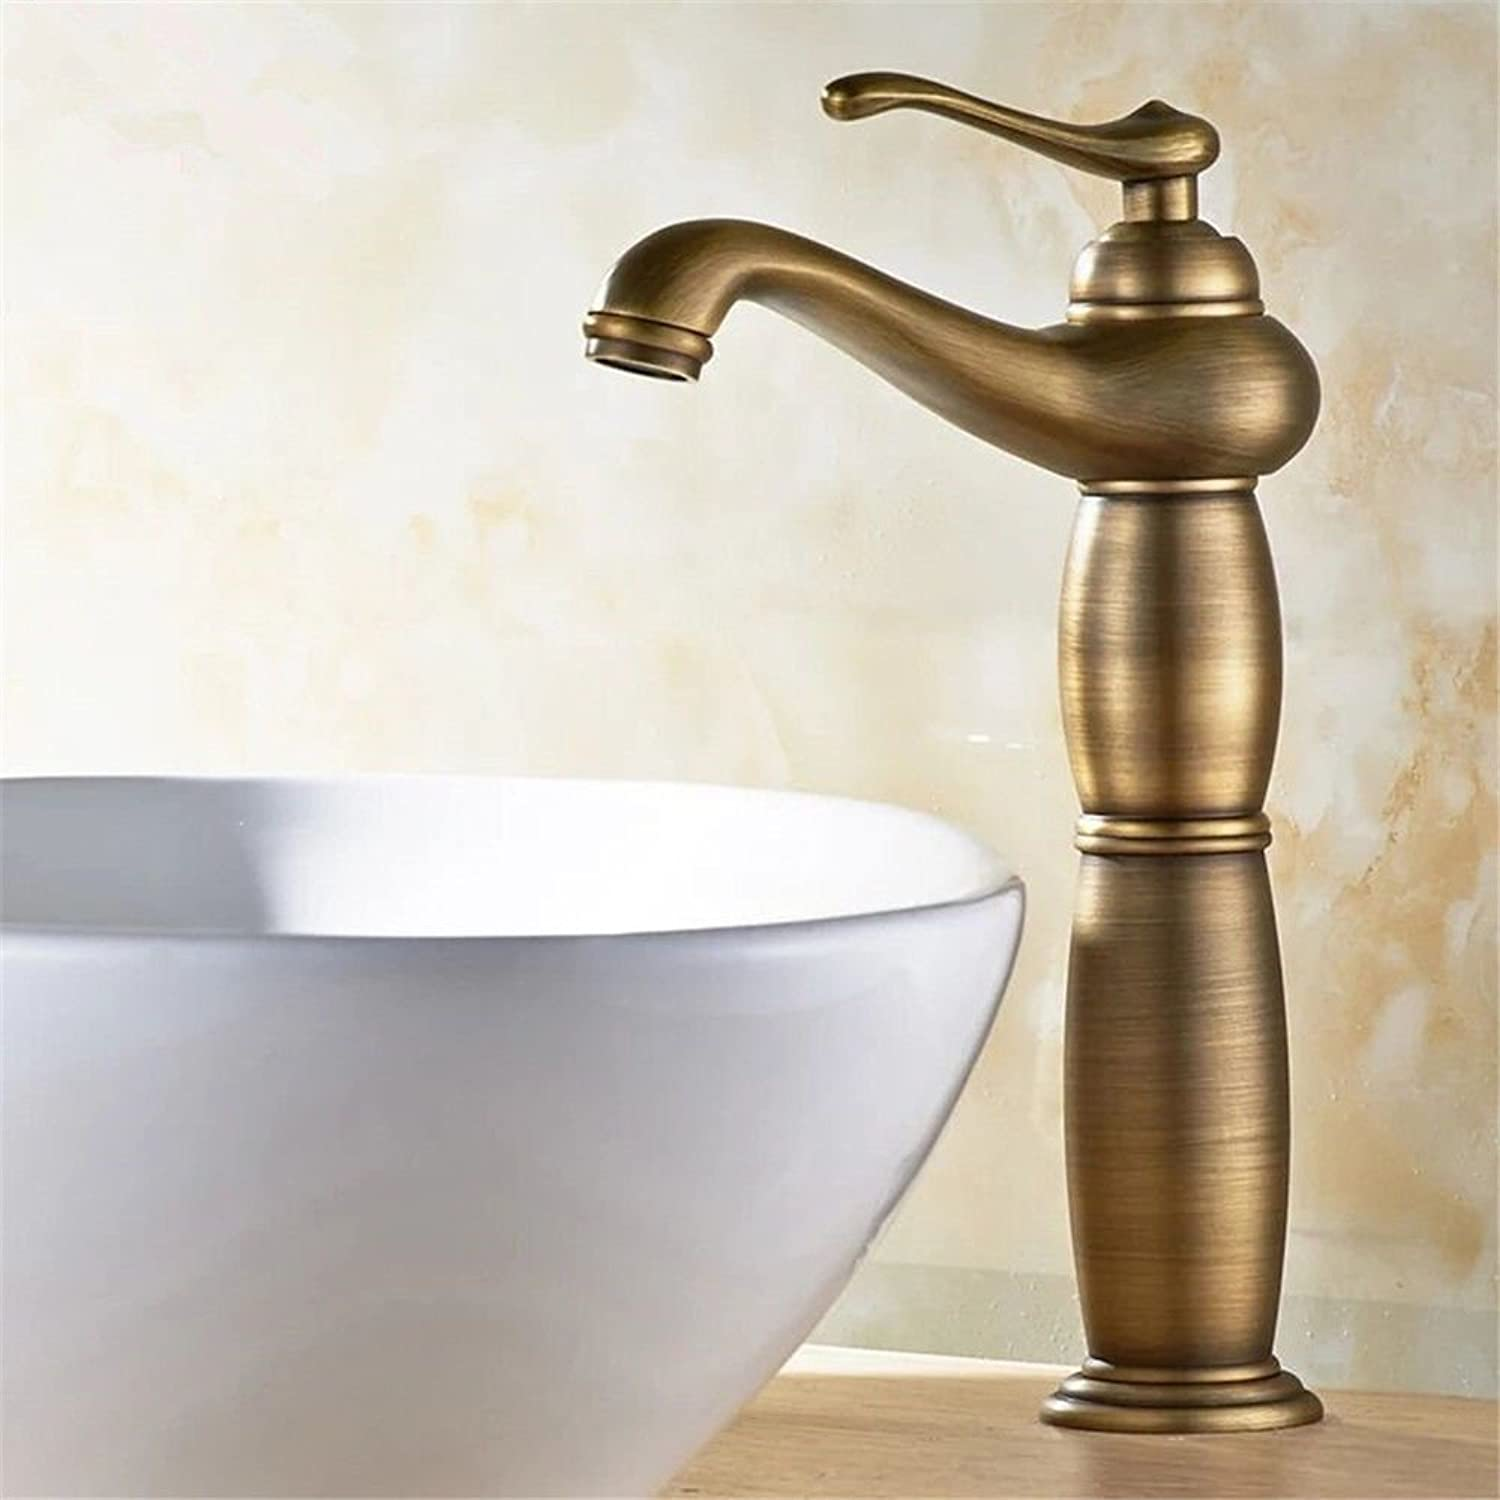 Hlluya Professional Sink Mixer Tap Kitchen Faucet Antique gold faucet basin faucet on hot and cold water basin mixer basin old water taps the C